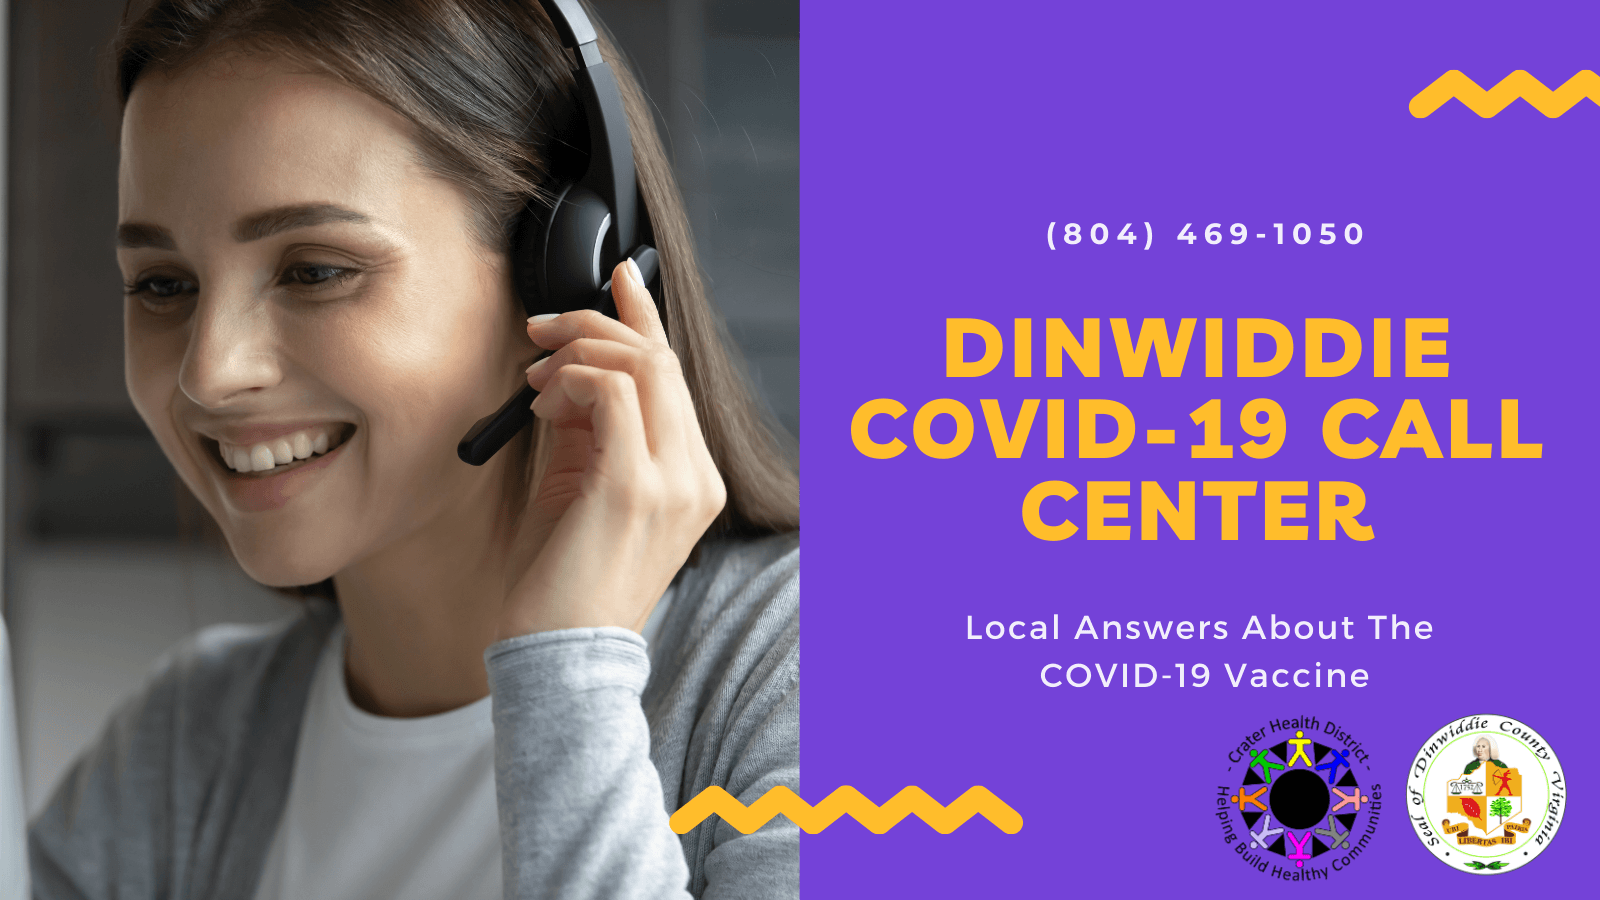 Call Center - Dinwiddie